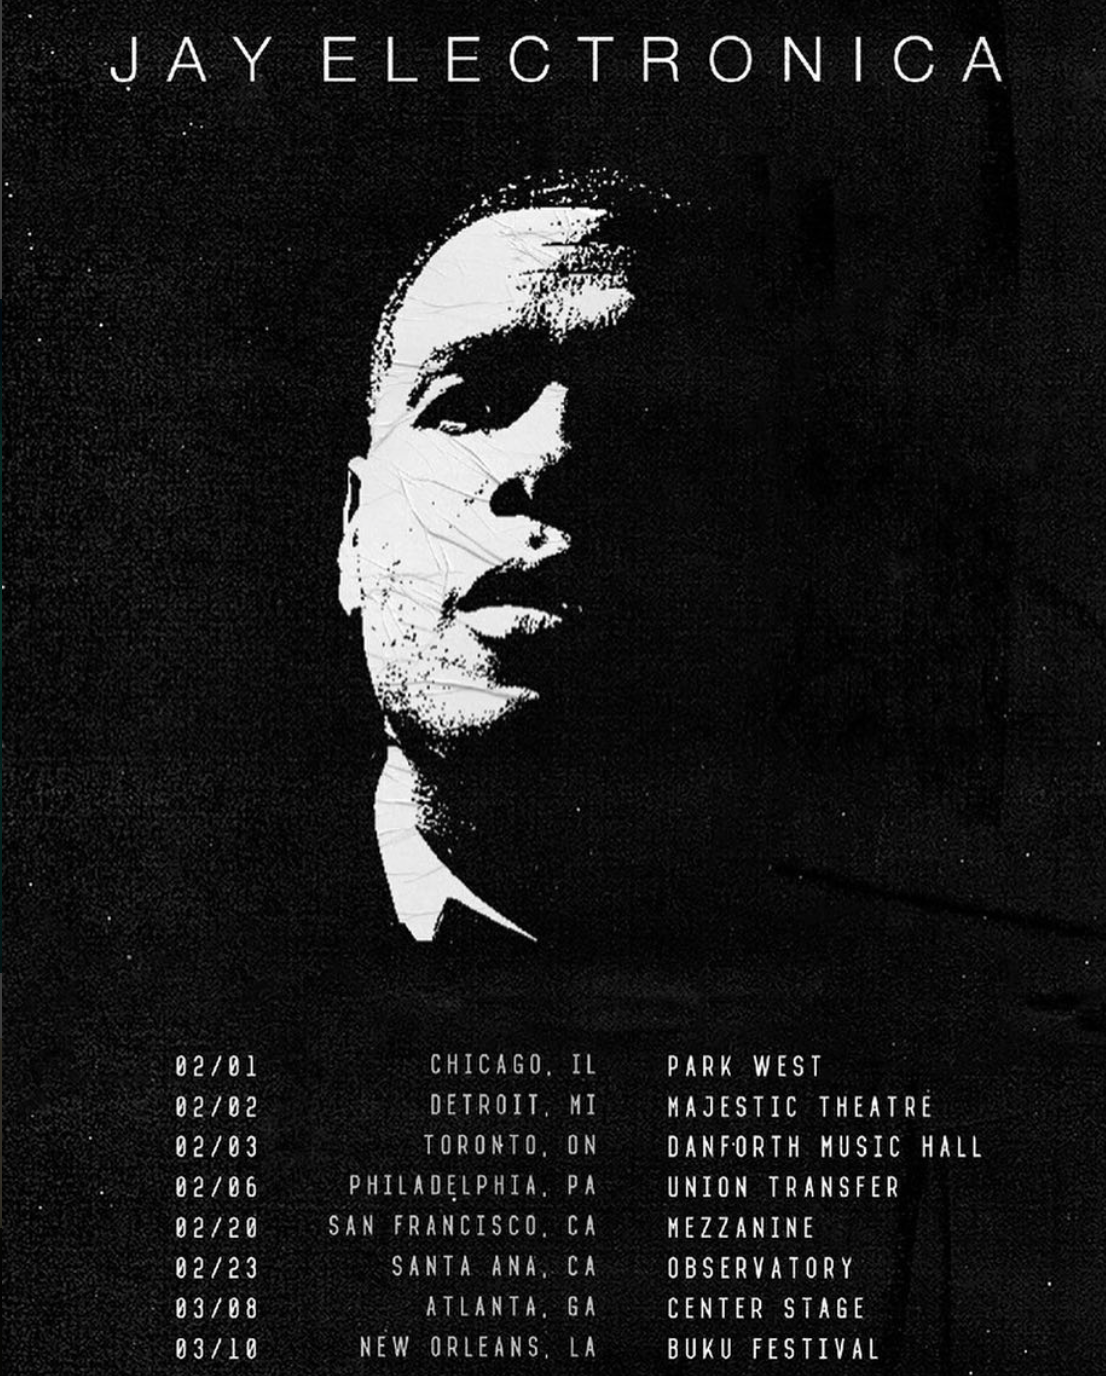 Electronica Medium Font Potential Jay Electronica Set List For His 2018 Tour